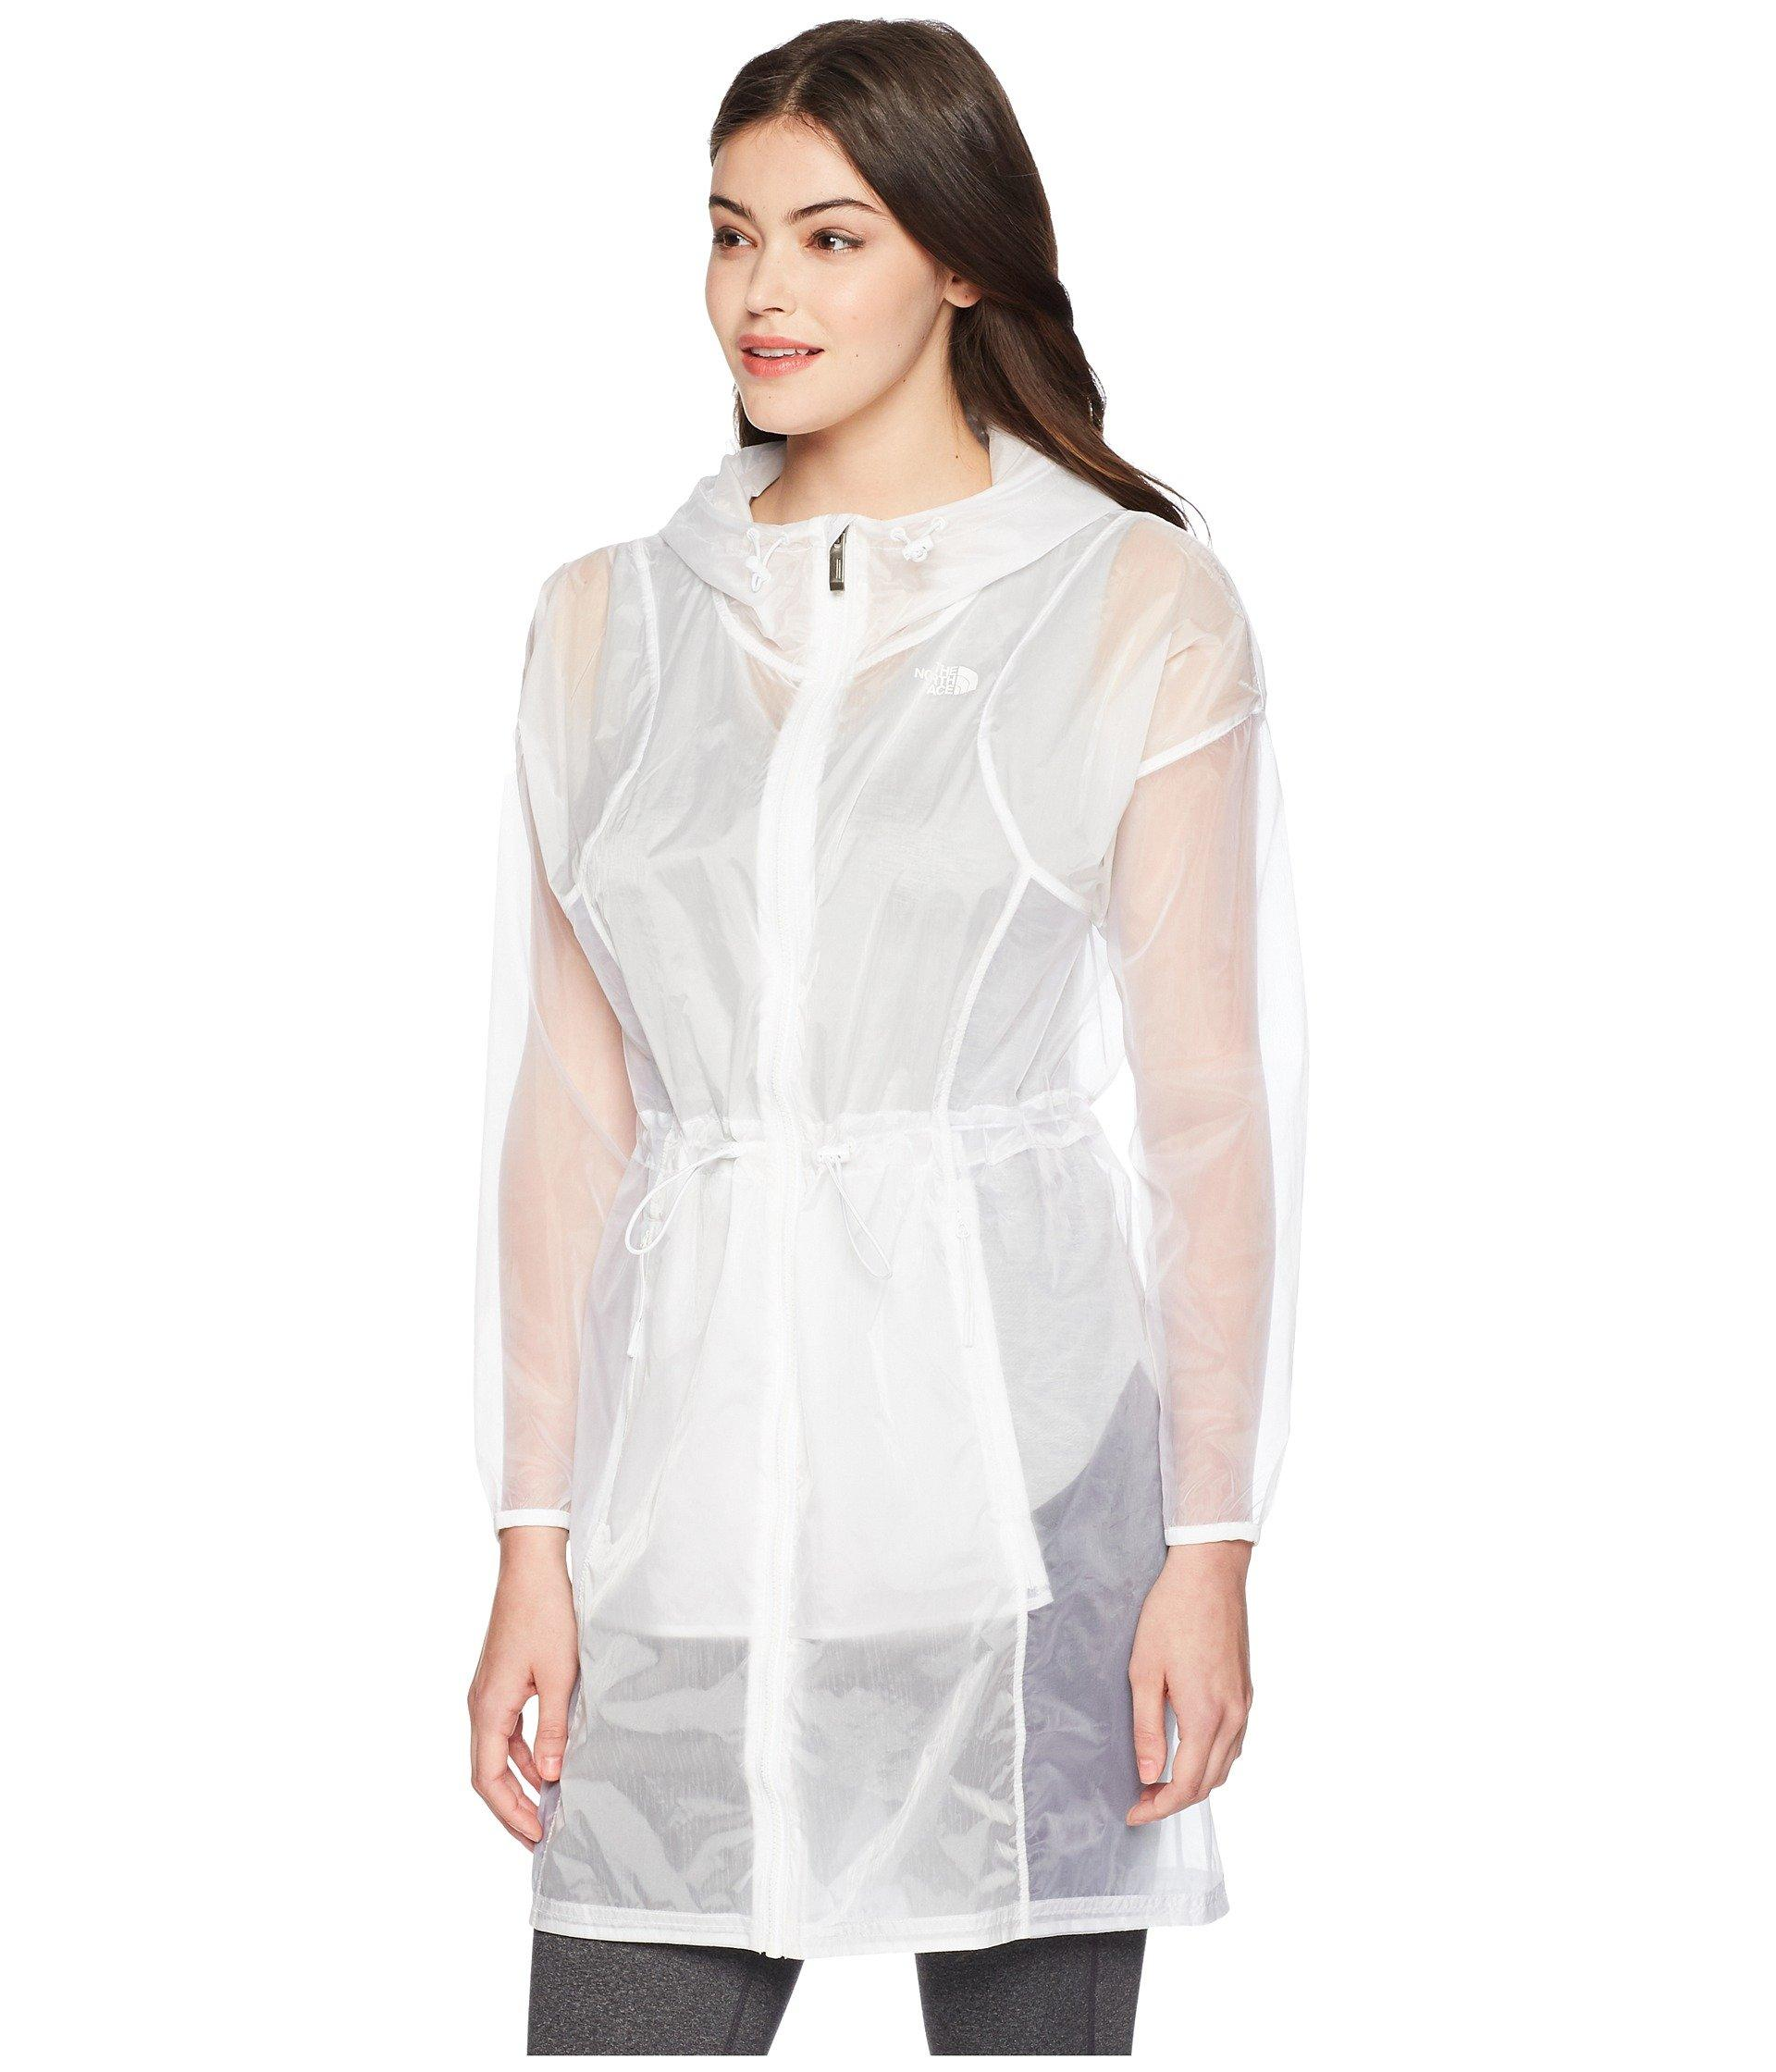 6f8b95e17e Lyst - The North Face Vision Reflective Jacket in White - Save 32%